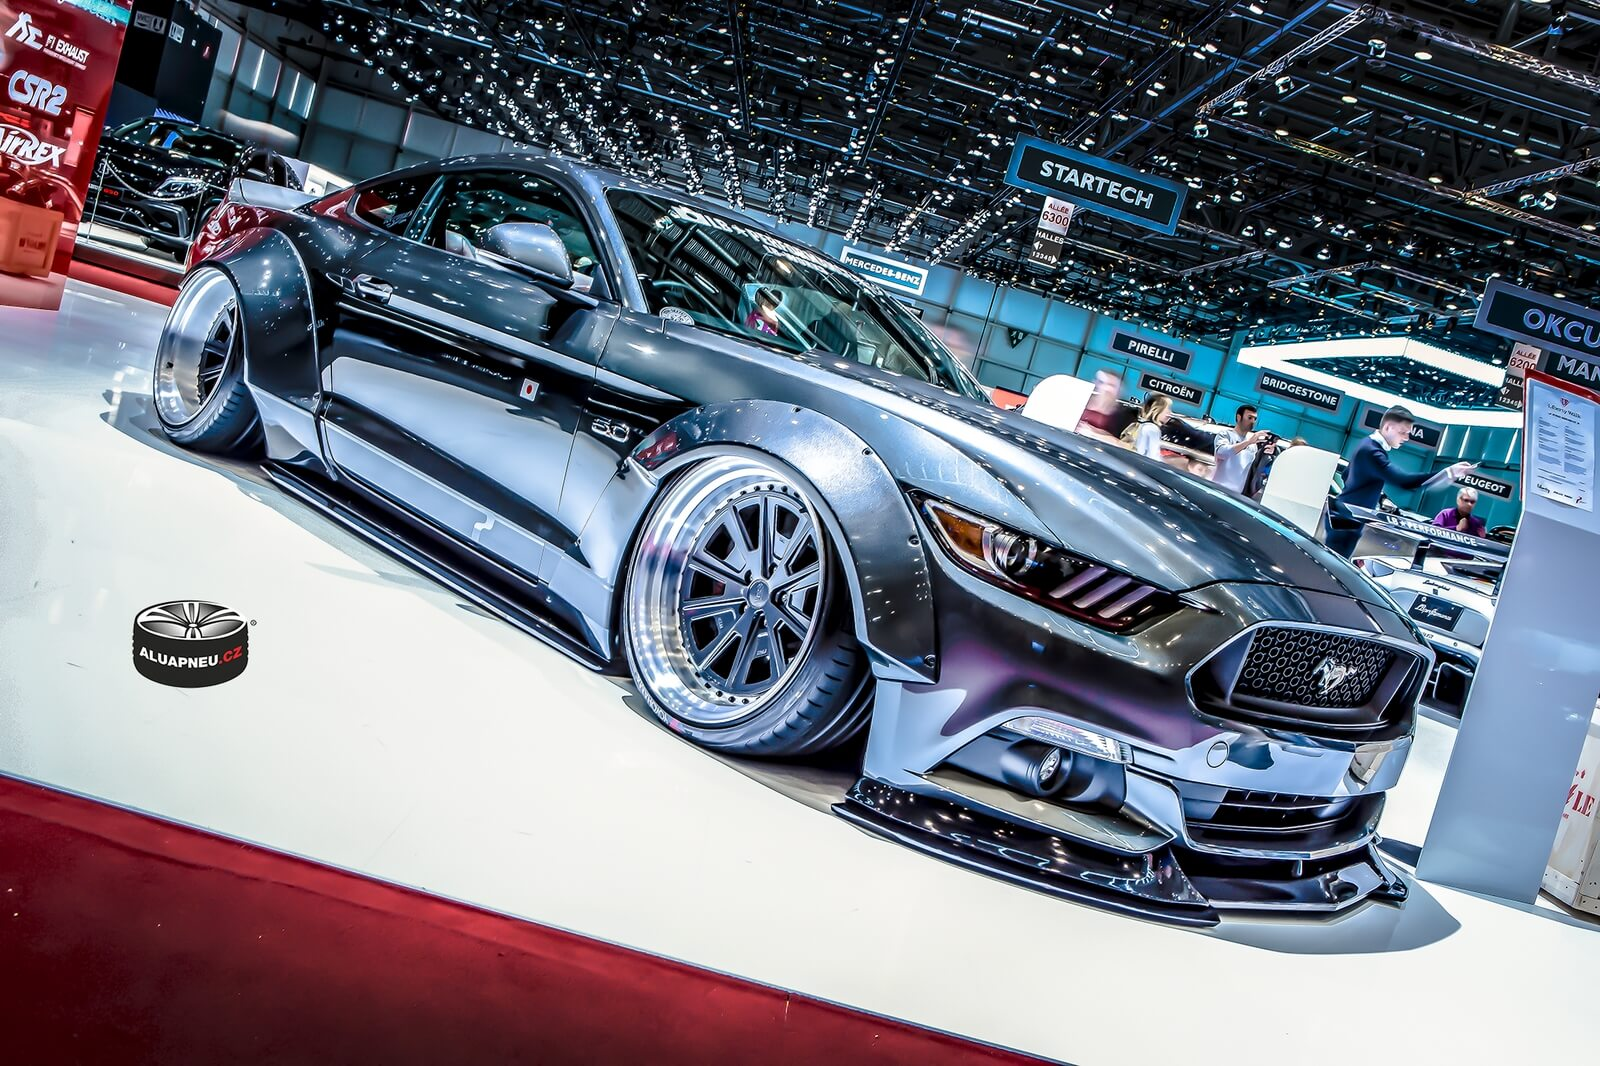 Ford Mustang Liberty Walk